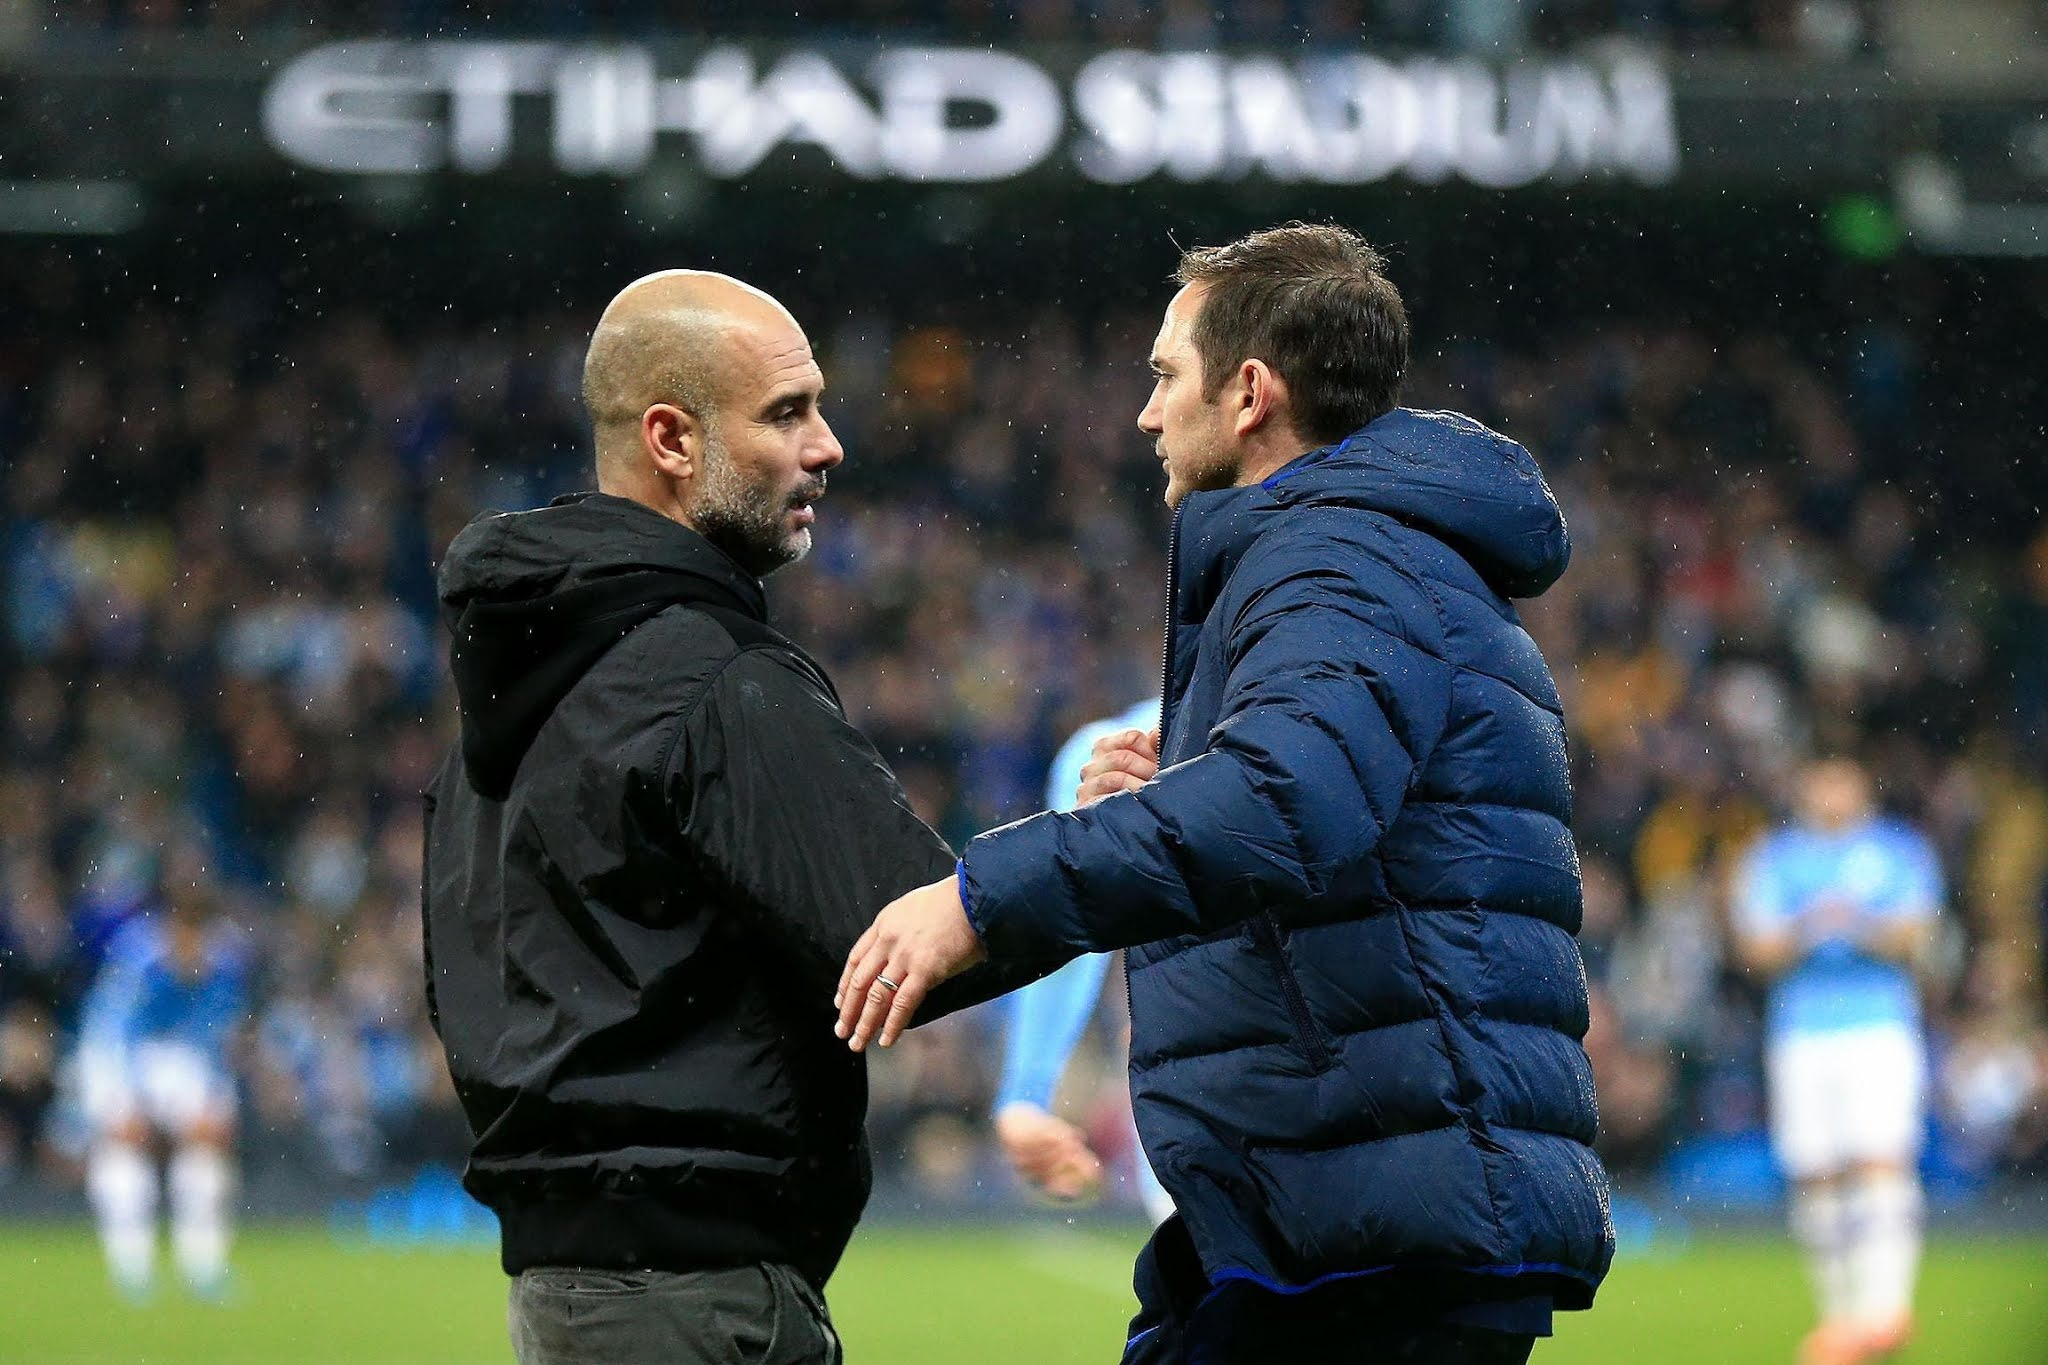 Frank Lampard and Pep Guardiola will lock horns this Saturday